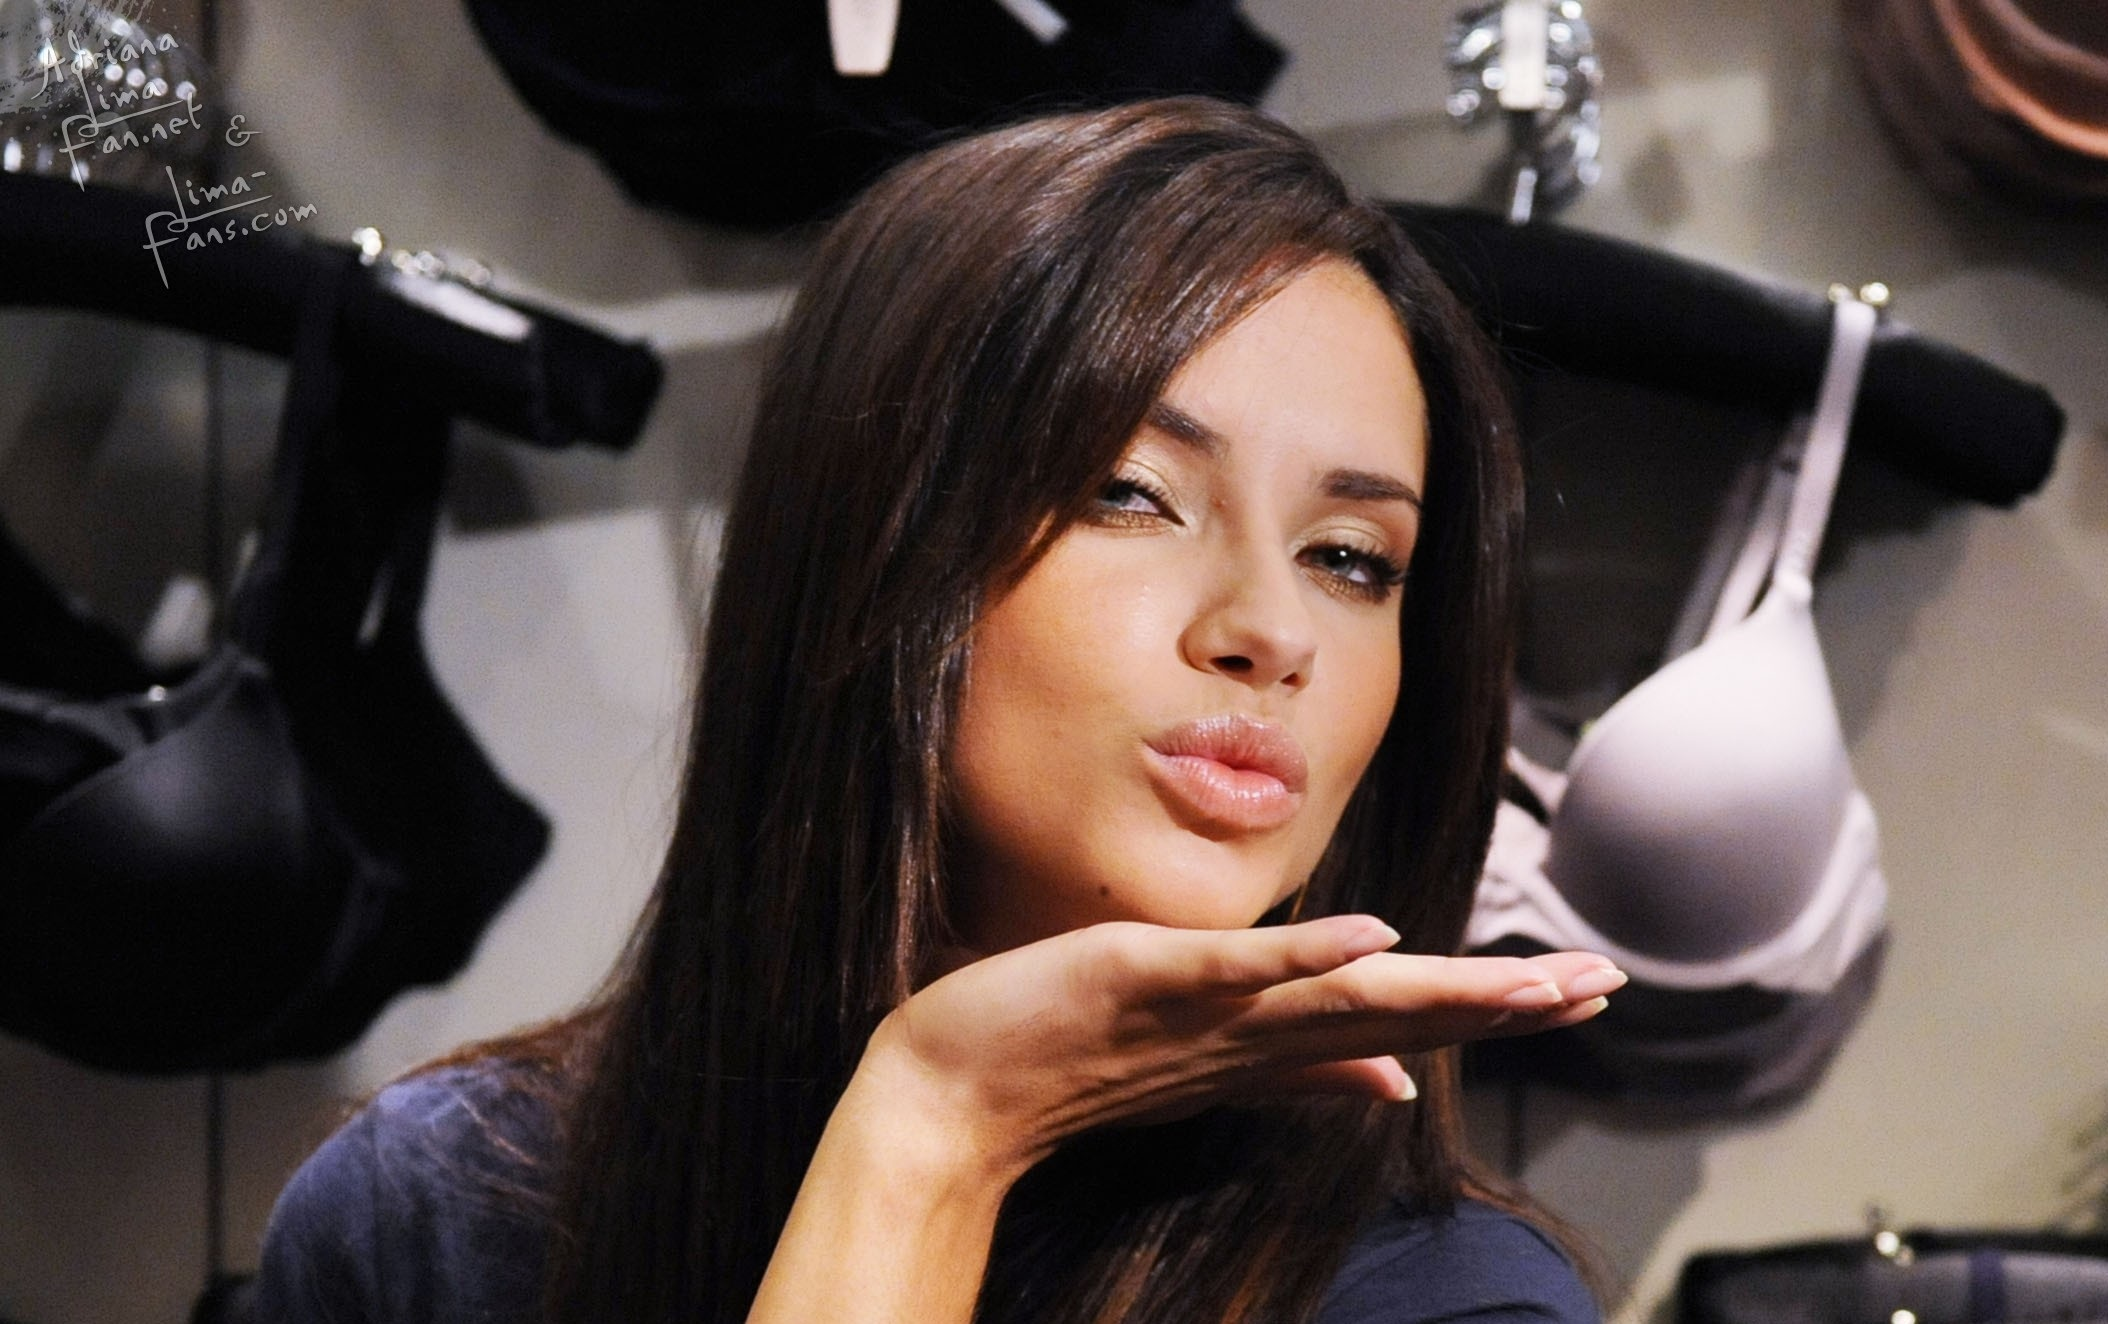 Download adriana lima pout face photoshoot 2560x1440 resolution download original voltagebd Image collections